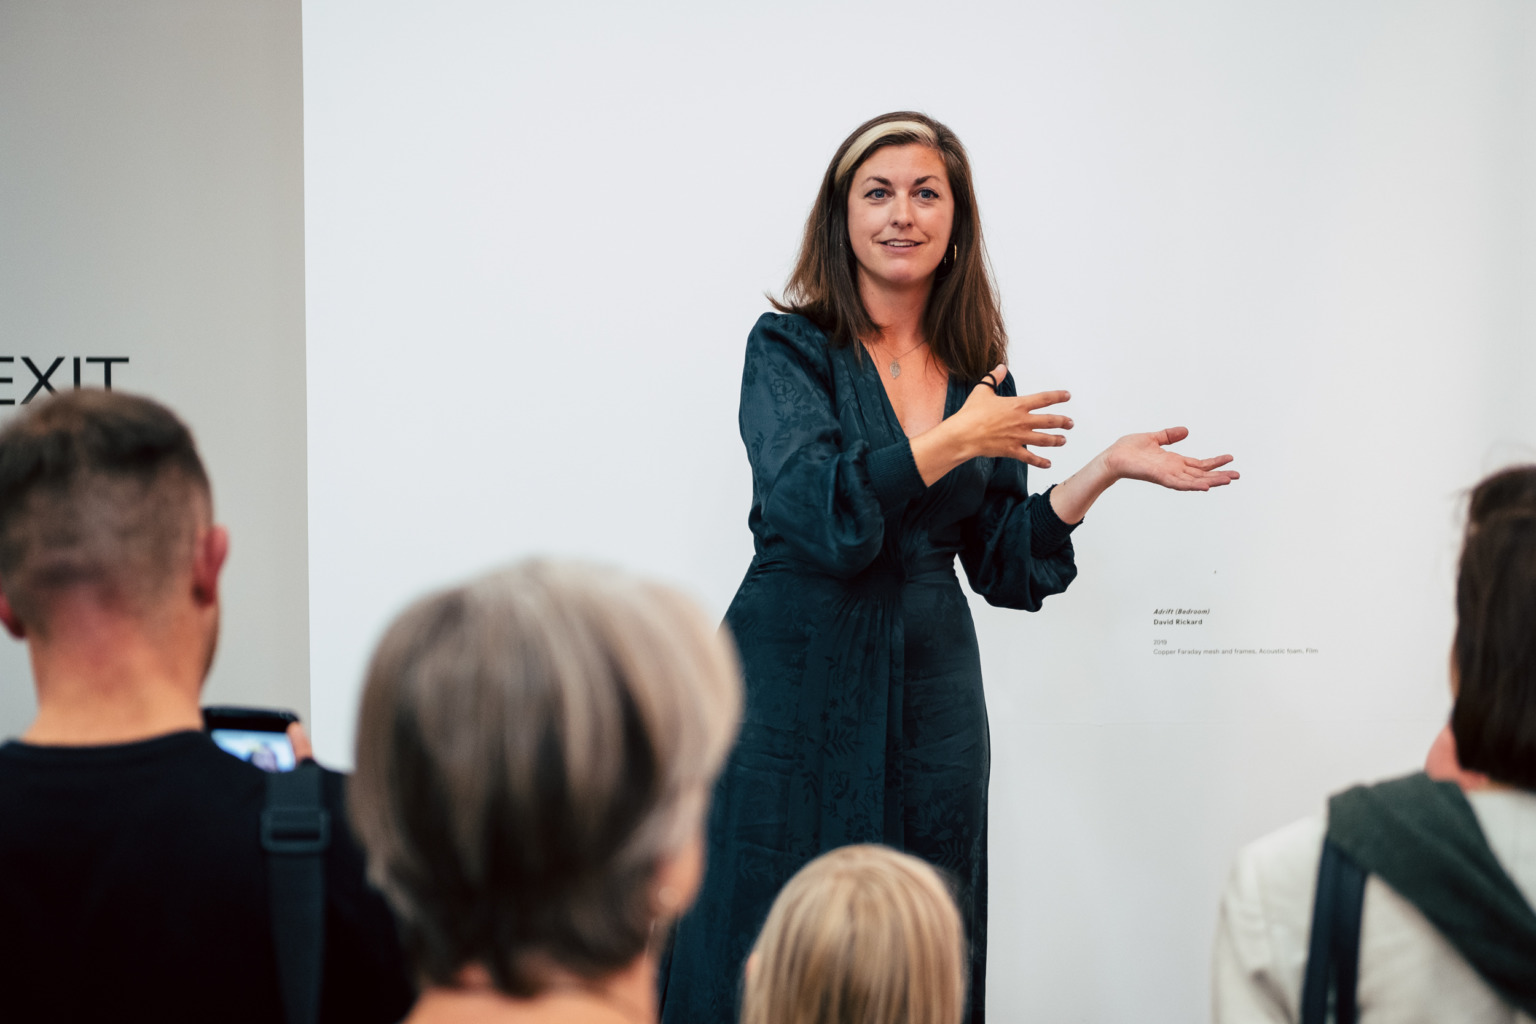 Profile picture of Becca Pelly-Fry, giving a curator's talk